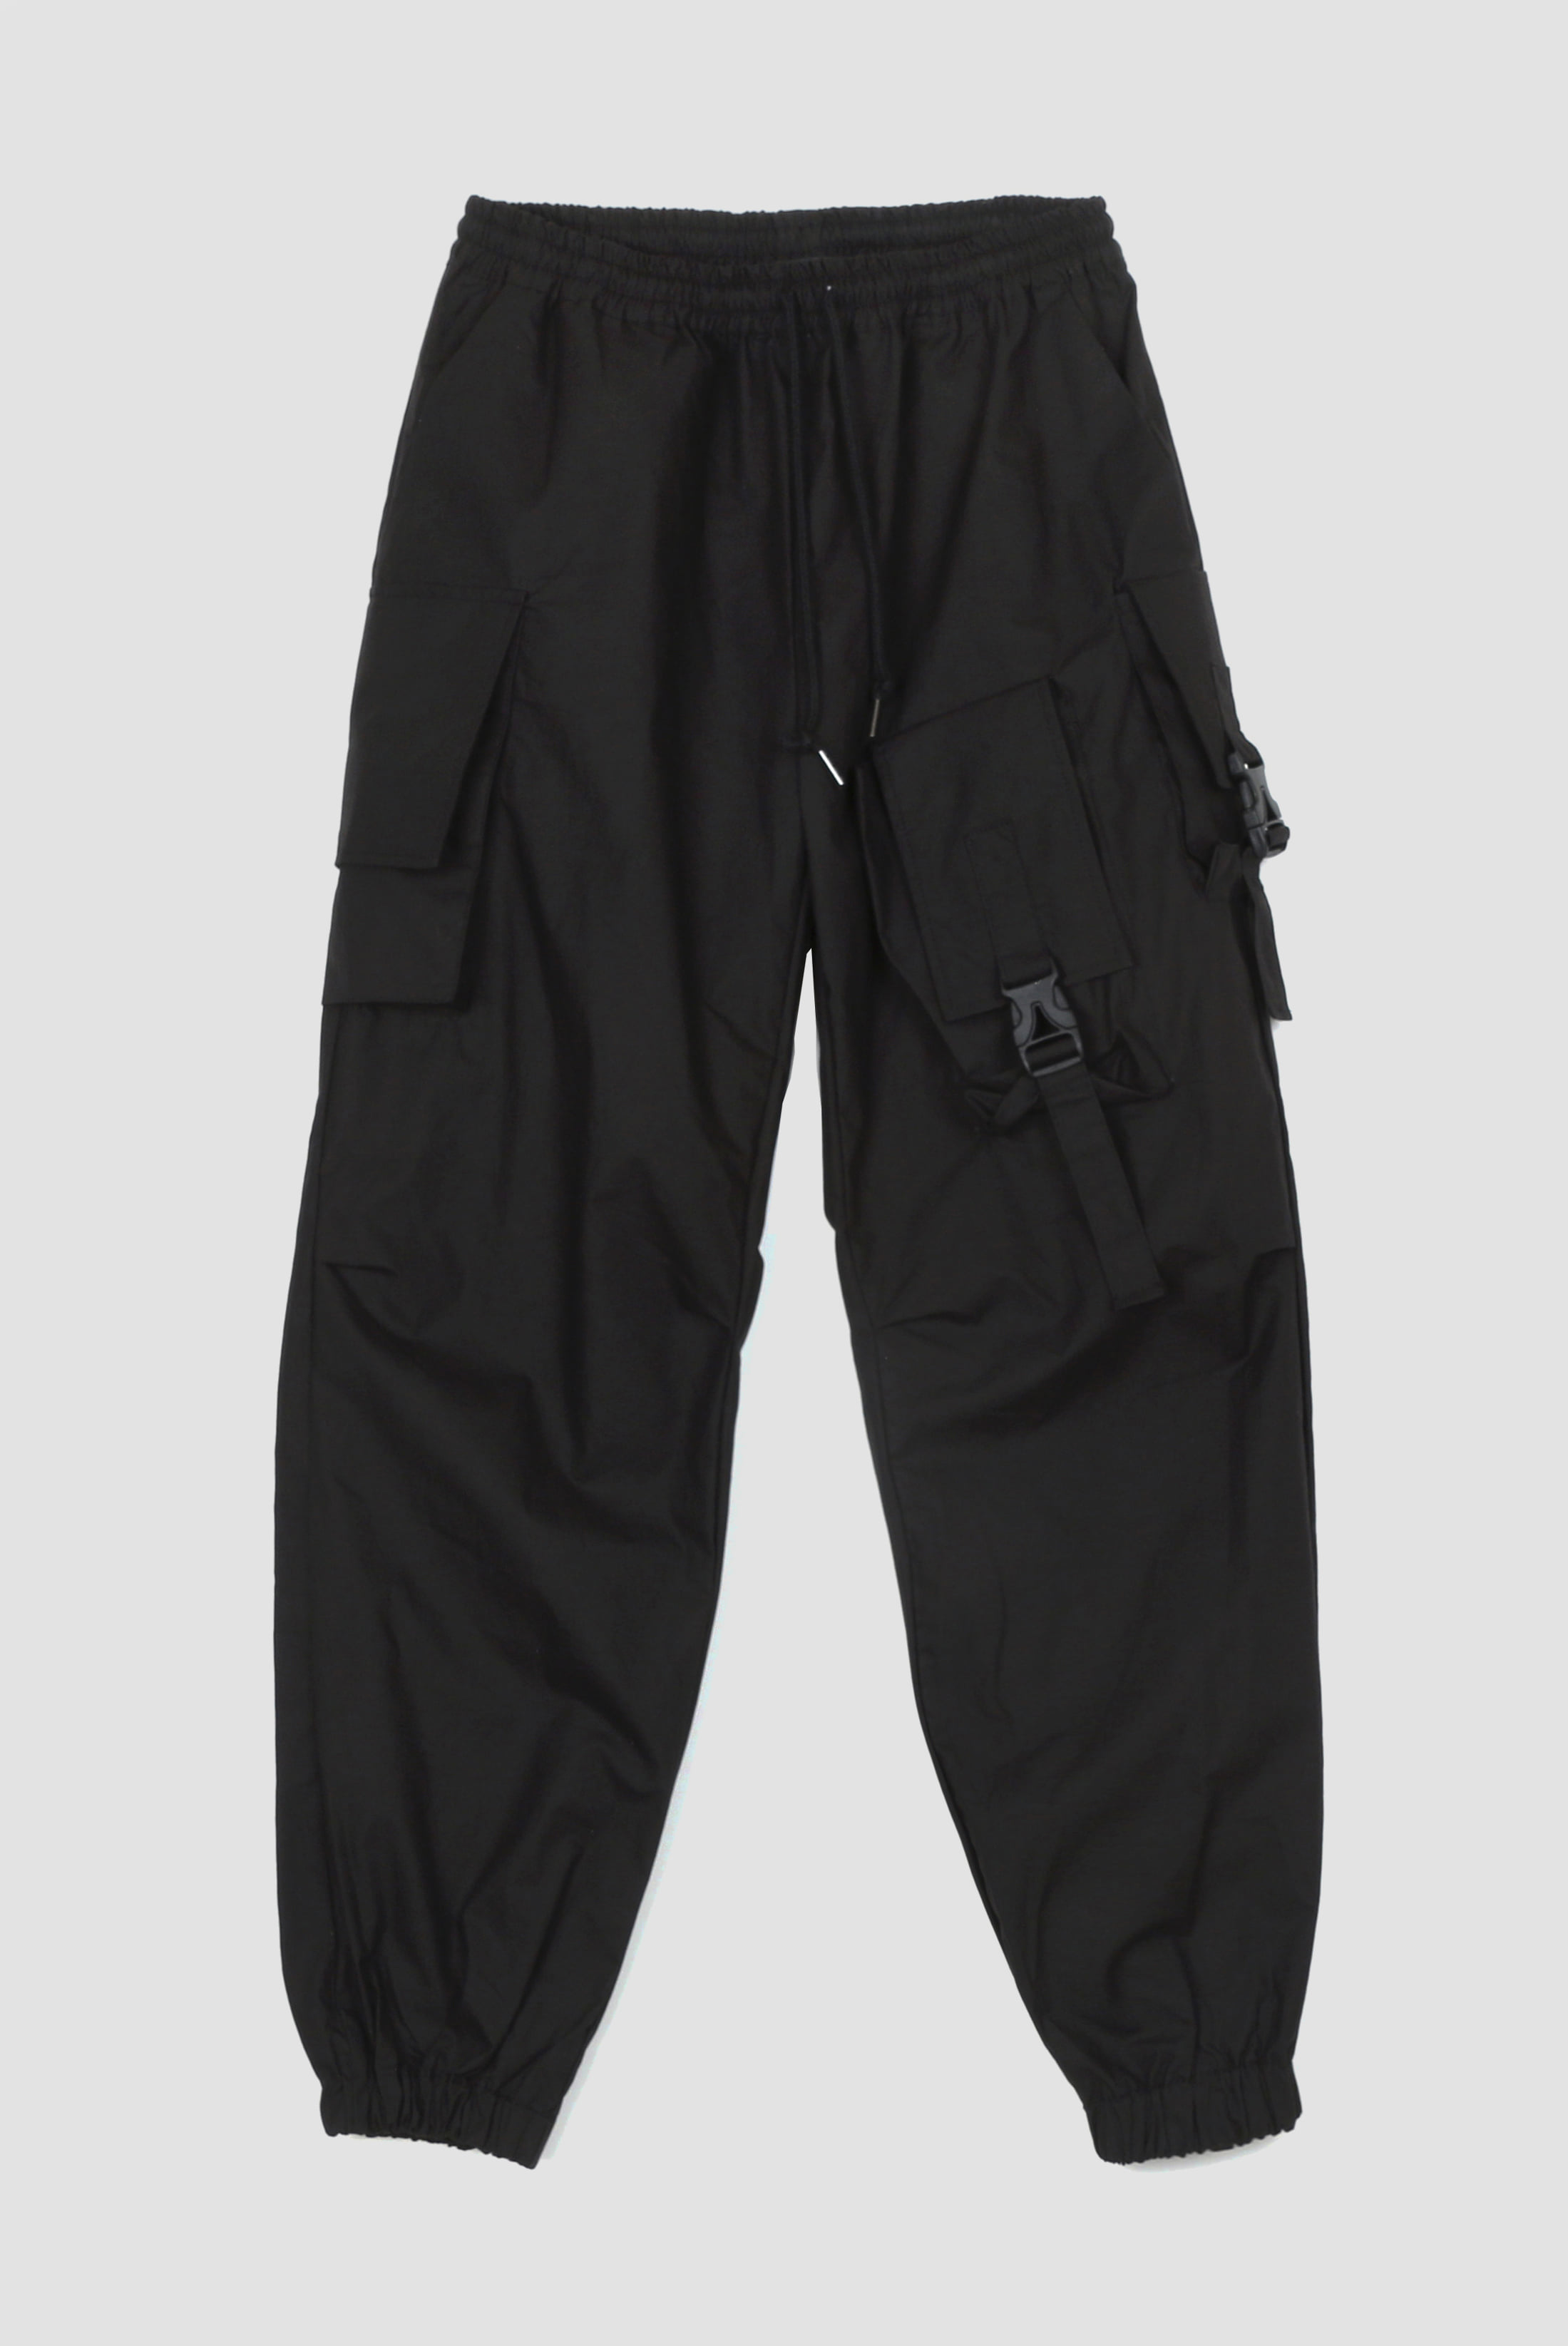 Magazine_Poket Cargo Pants